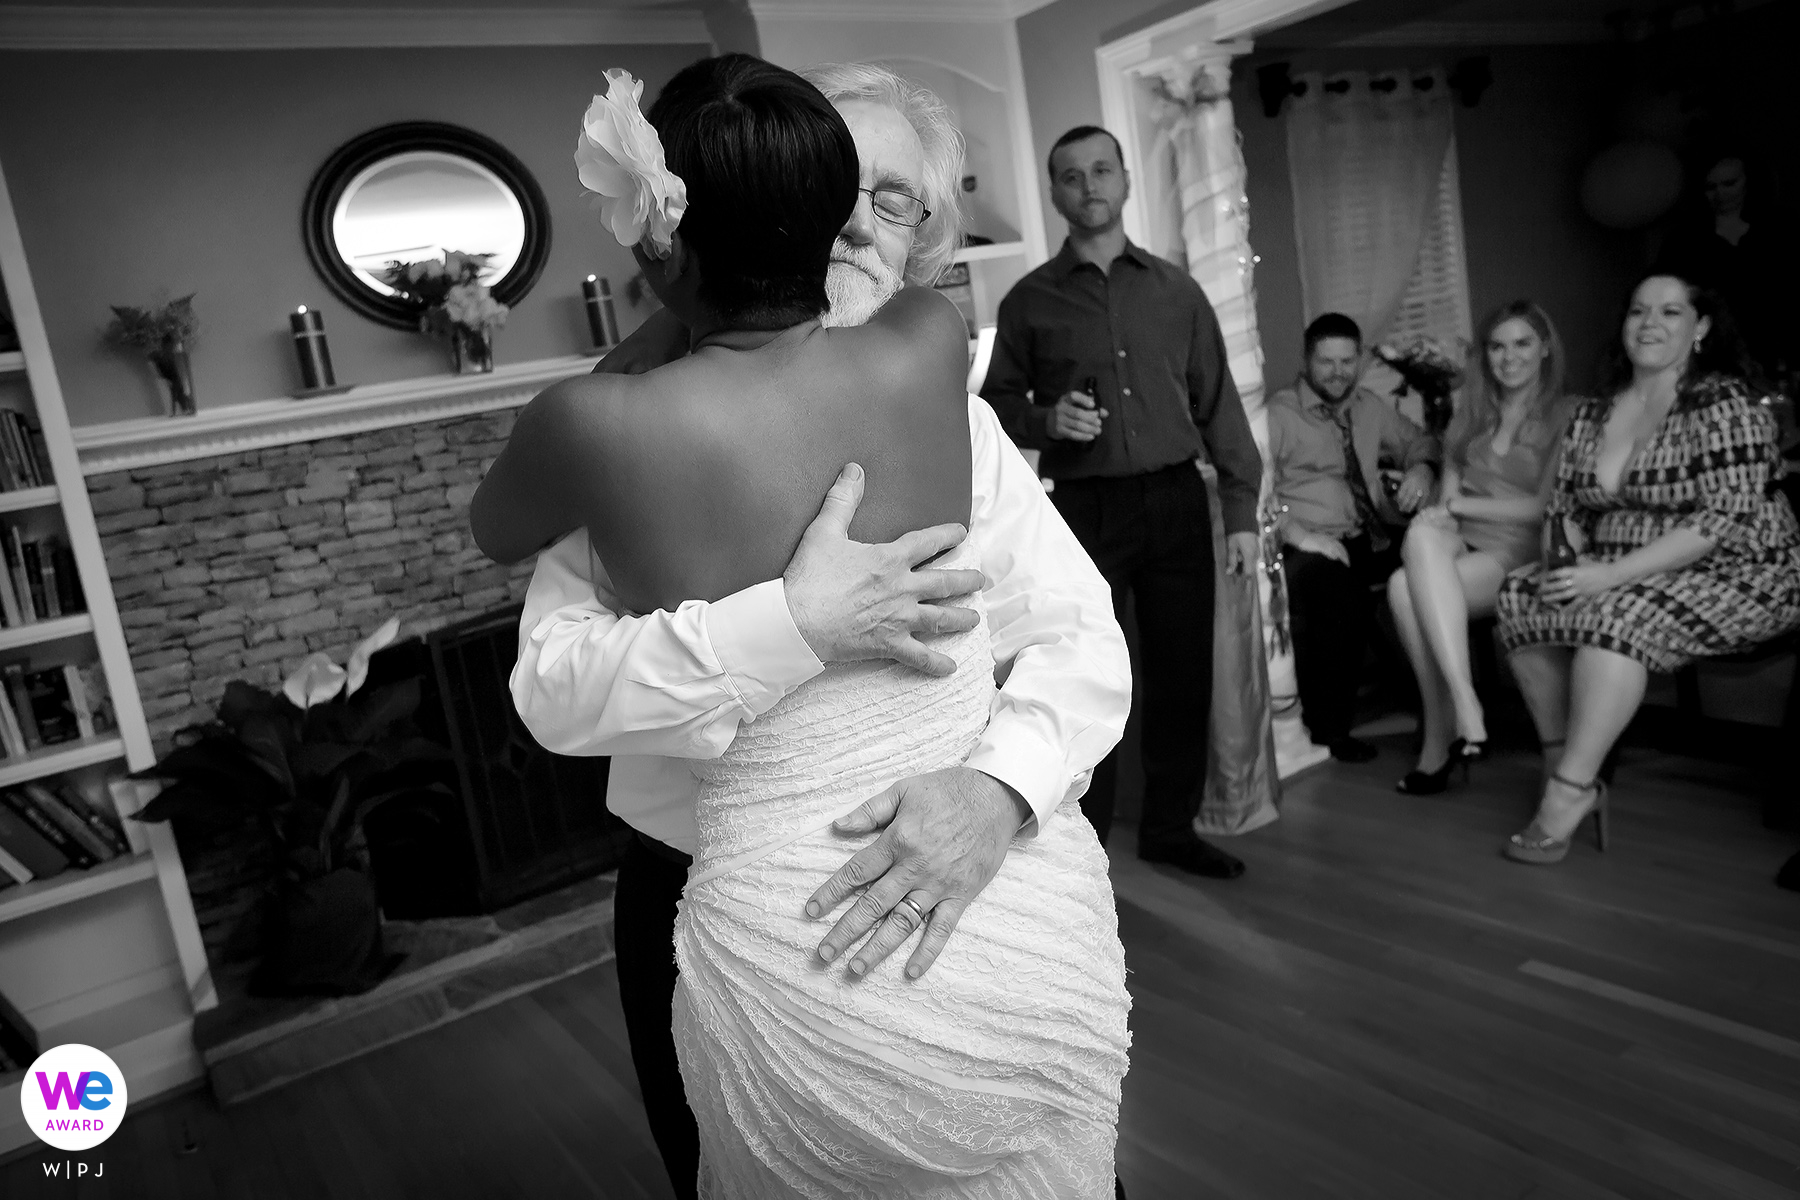 Sandy Springs, Georgia Wedding Photography created as The bride and groom dance together at the reception inside their home